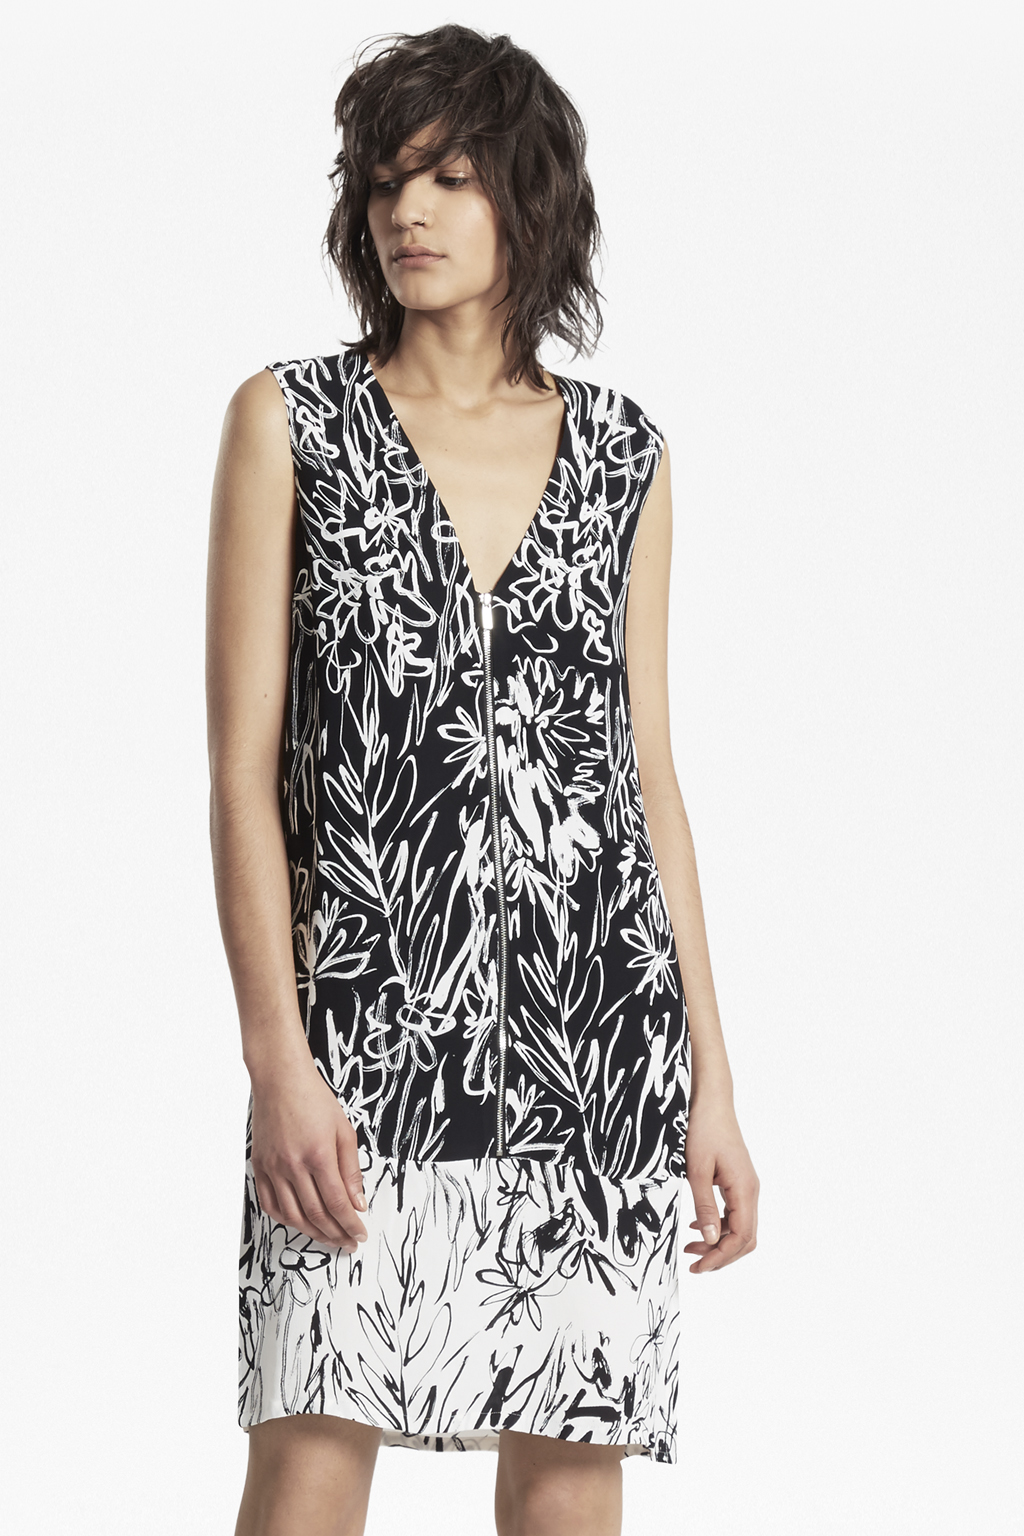 Copley Crepe Print Shift Dress - Black/summer white French Connection kTNnb